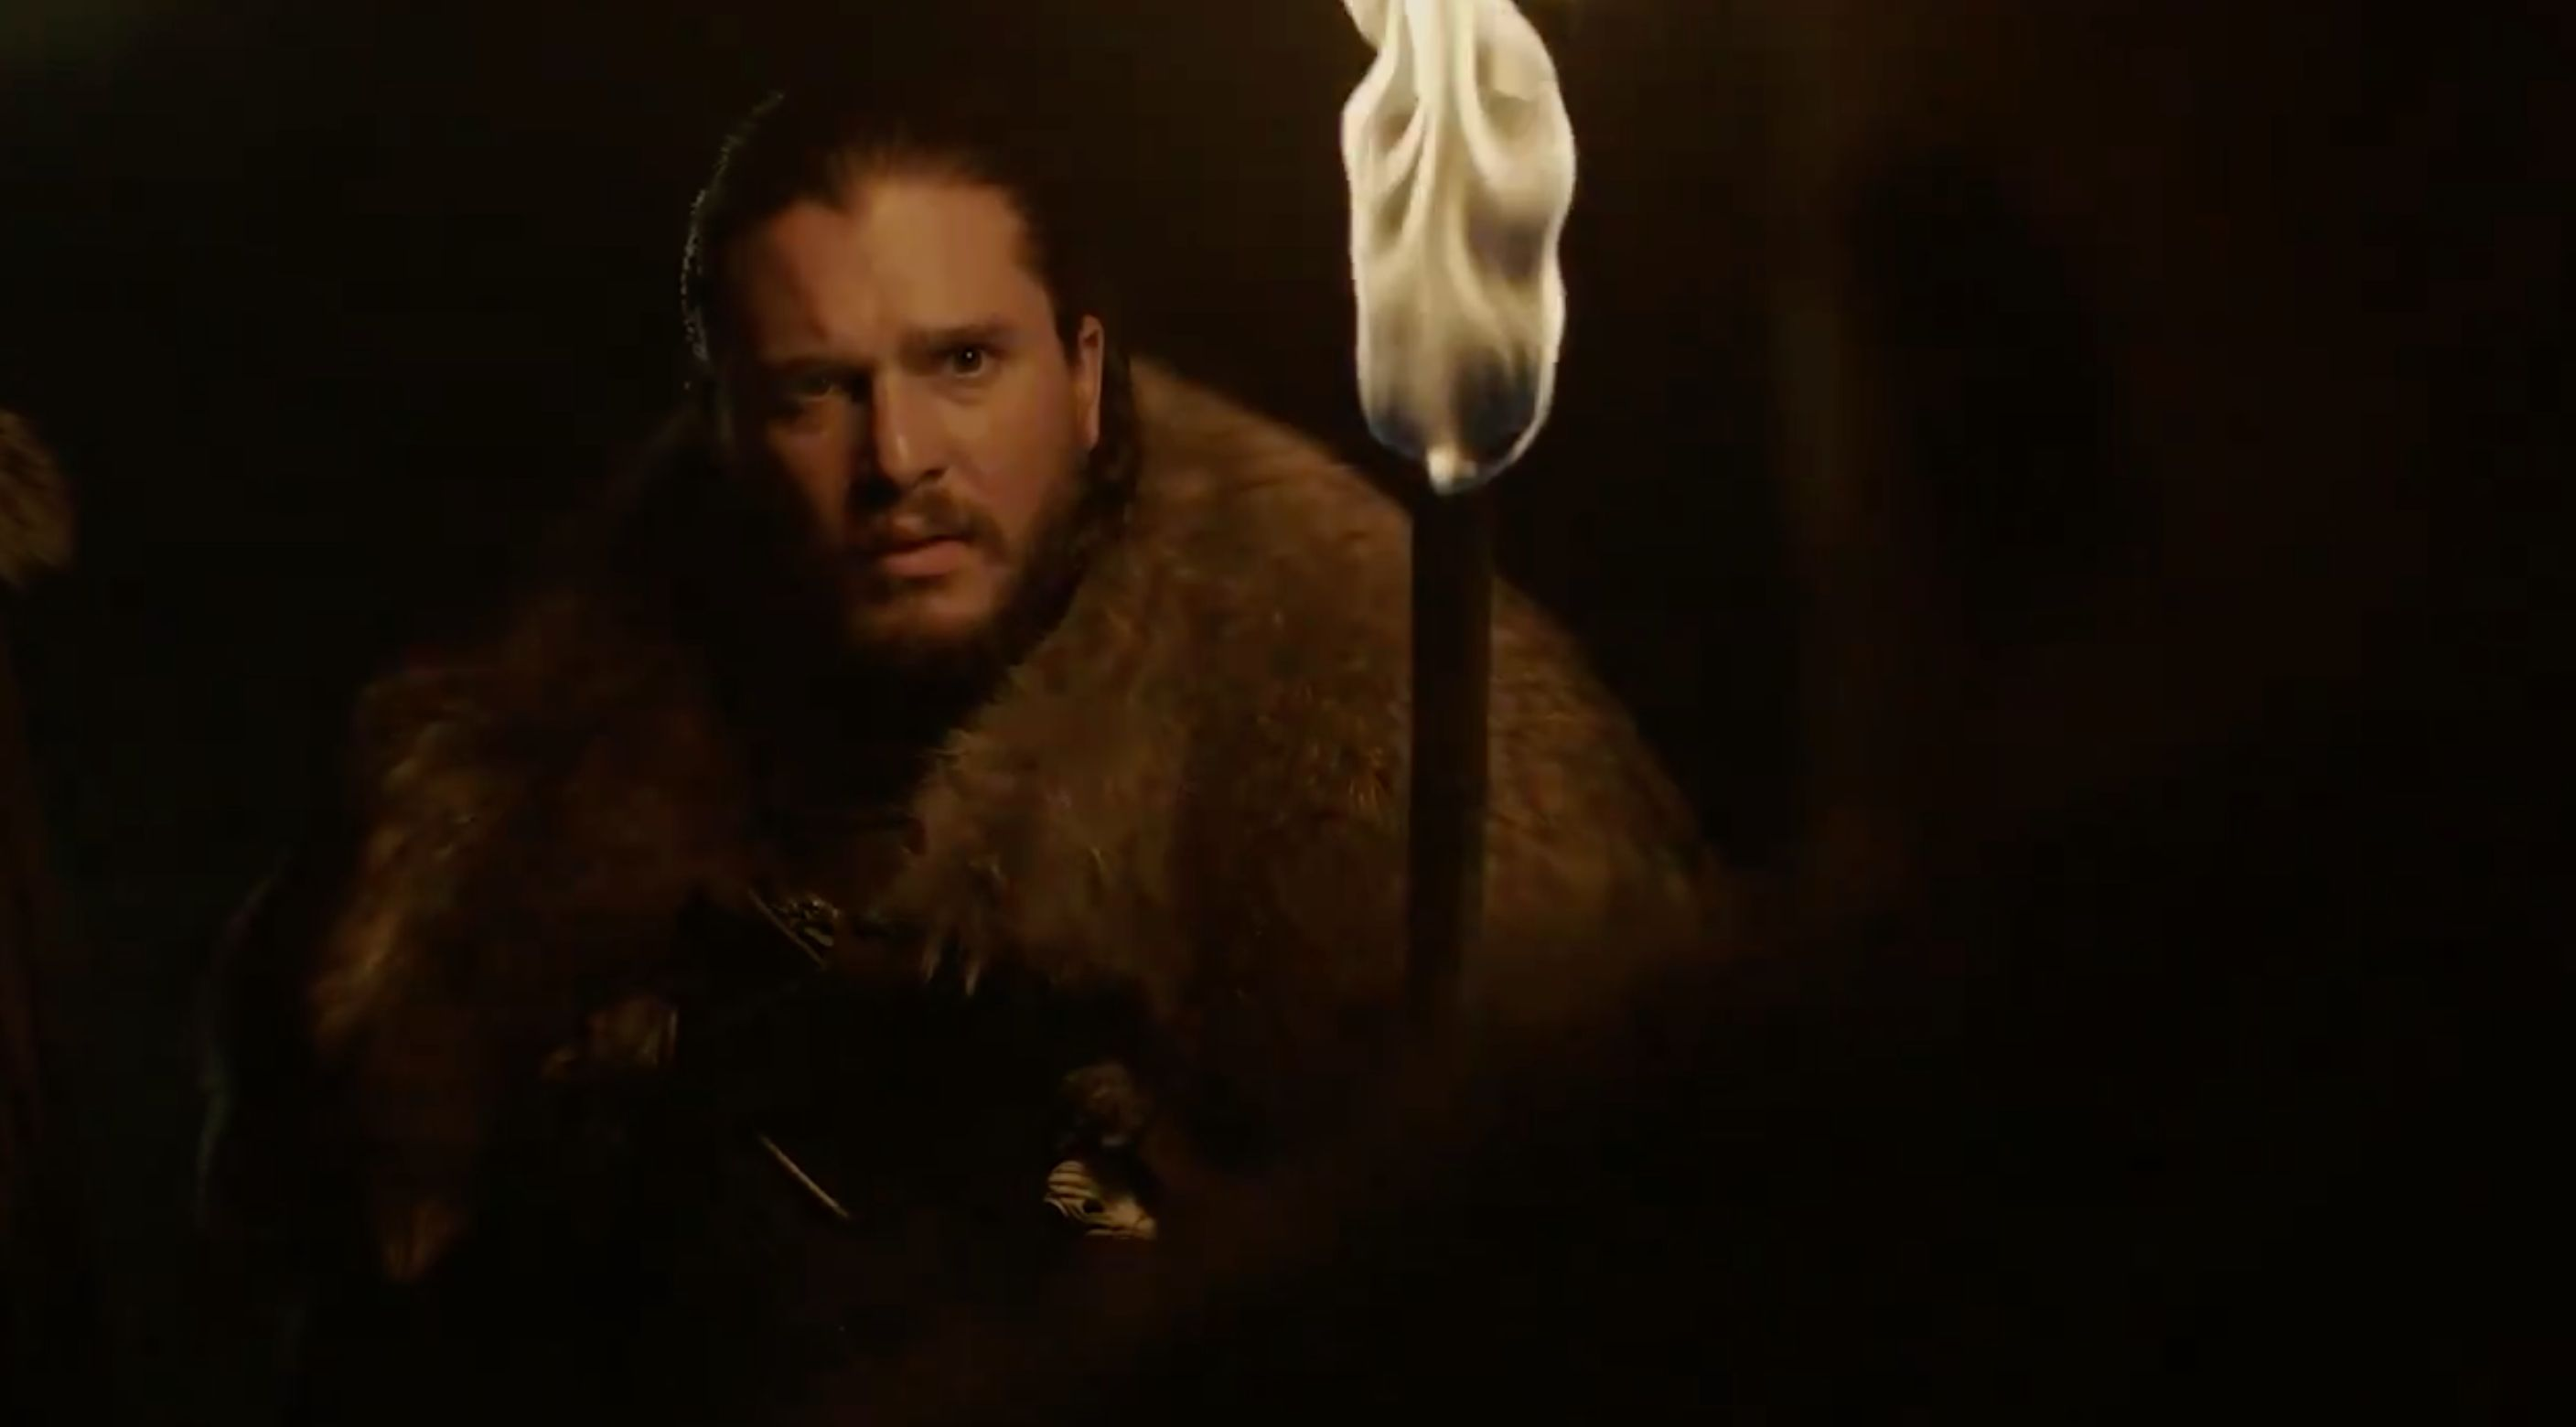 The New 'Game Of Thrones' Teaser May Cause You To Freak Out. Here's Why You